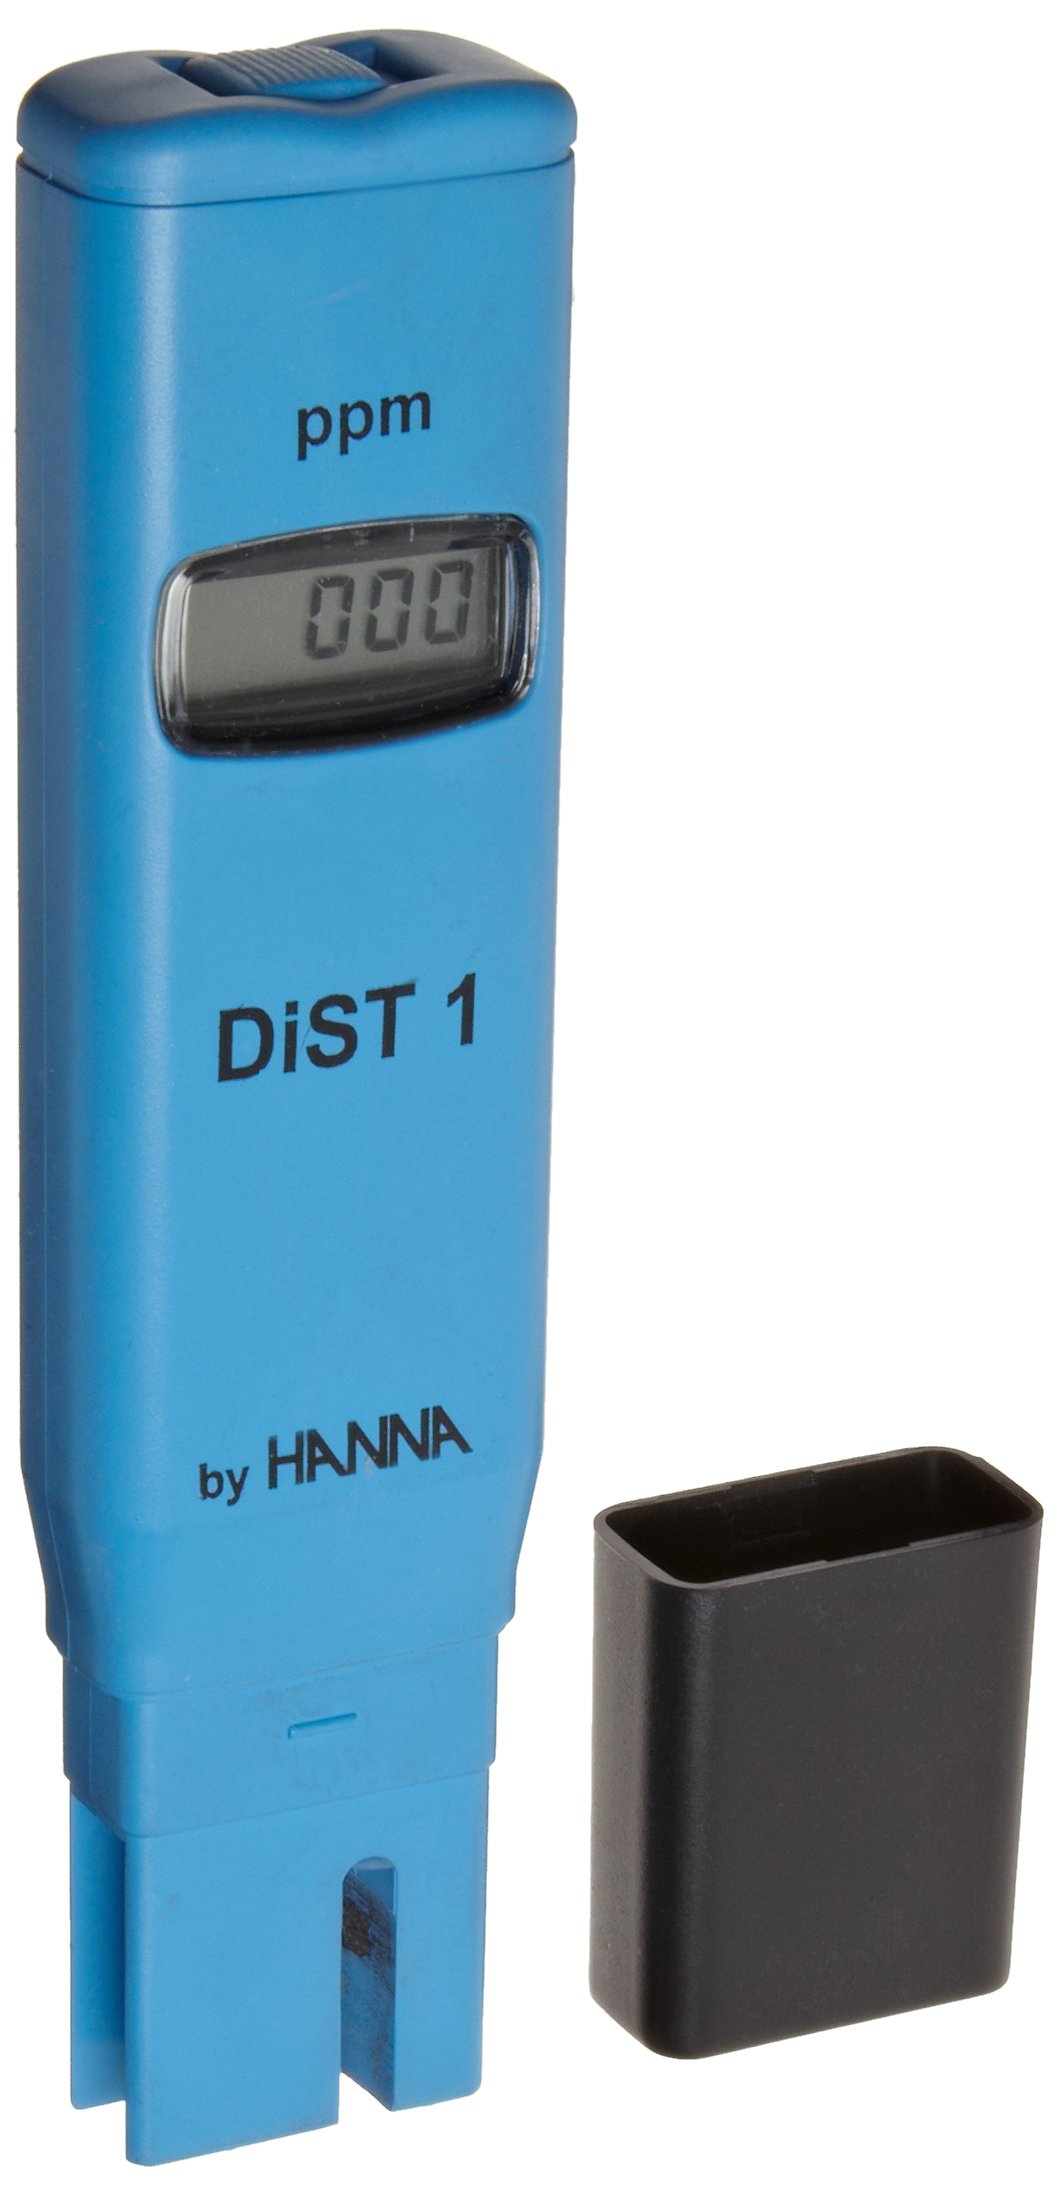 Hanna Instruments HI98301 DiST1 EC and TDS Tester, 0.5 TDS Factor, 1999 mg/L (ppm), 1 mg/L (ppm) Resolution, +/-2% Accuracy